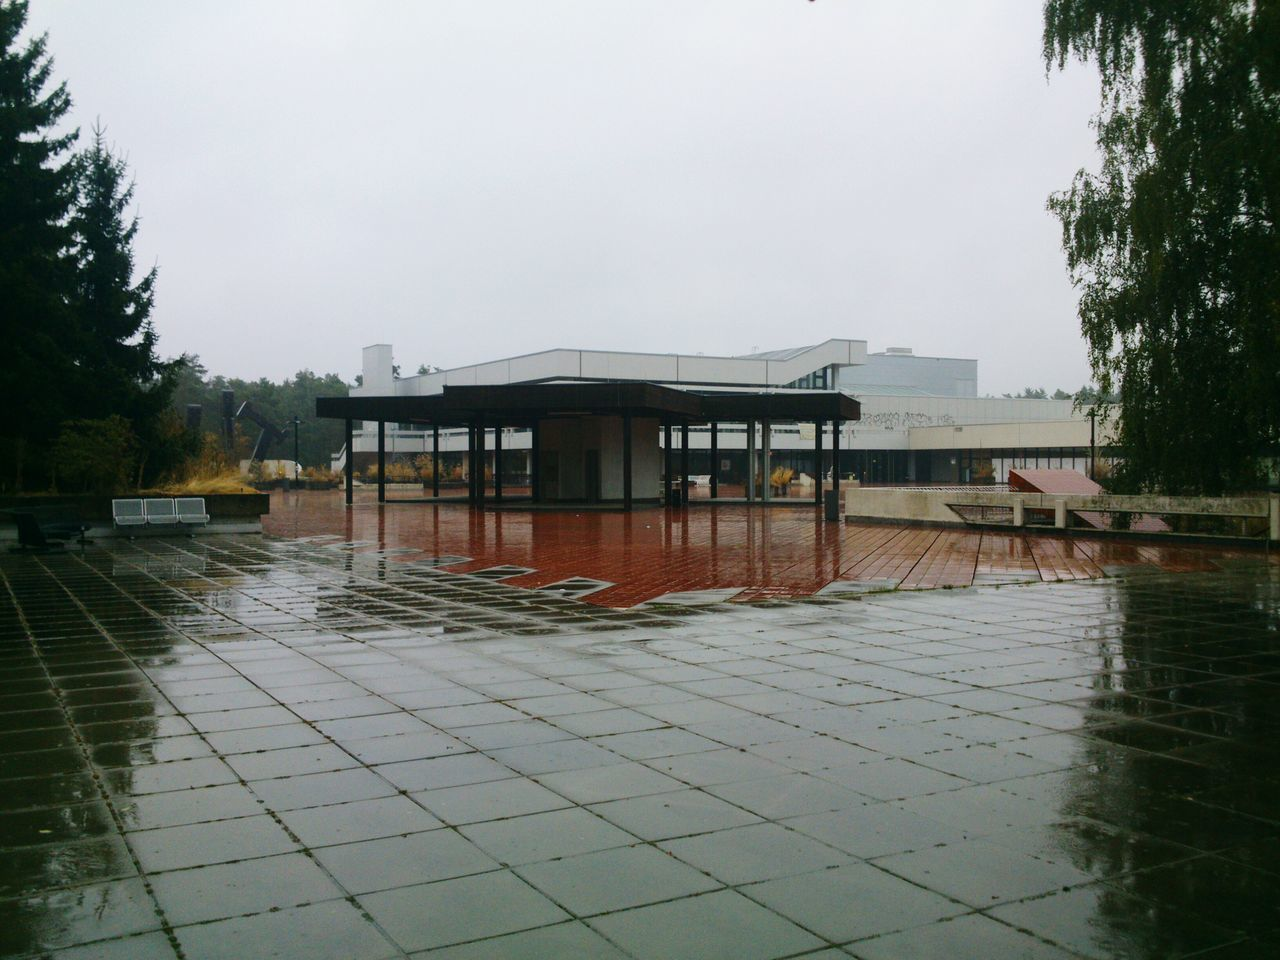 Built Structure Architecture Water Building Exterior Day Red Erlangen Roter Platz Red Square Fall Season Autumn Collection Rainy Days No People